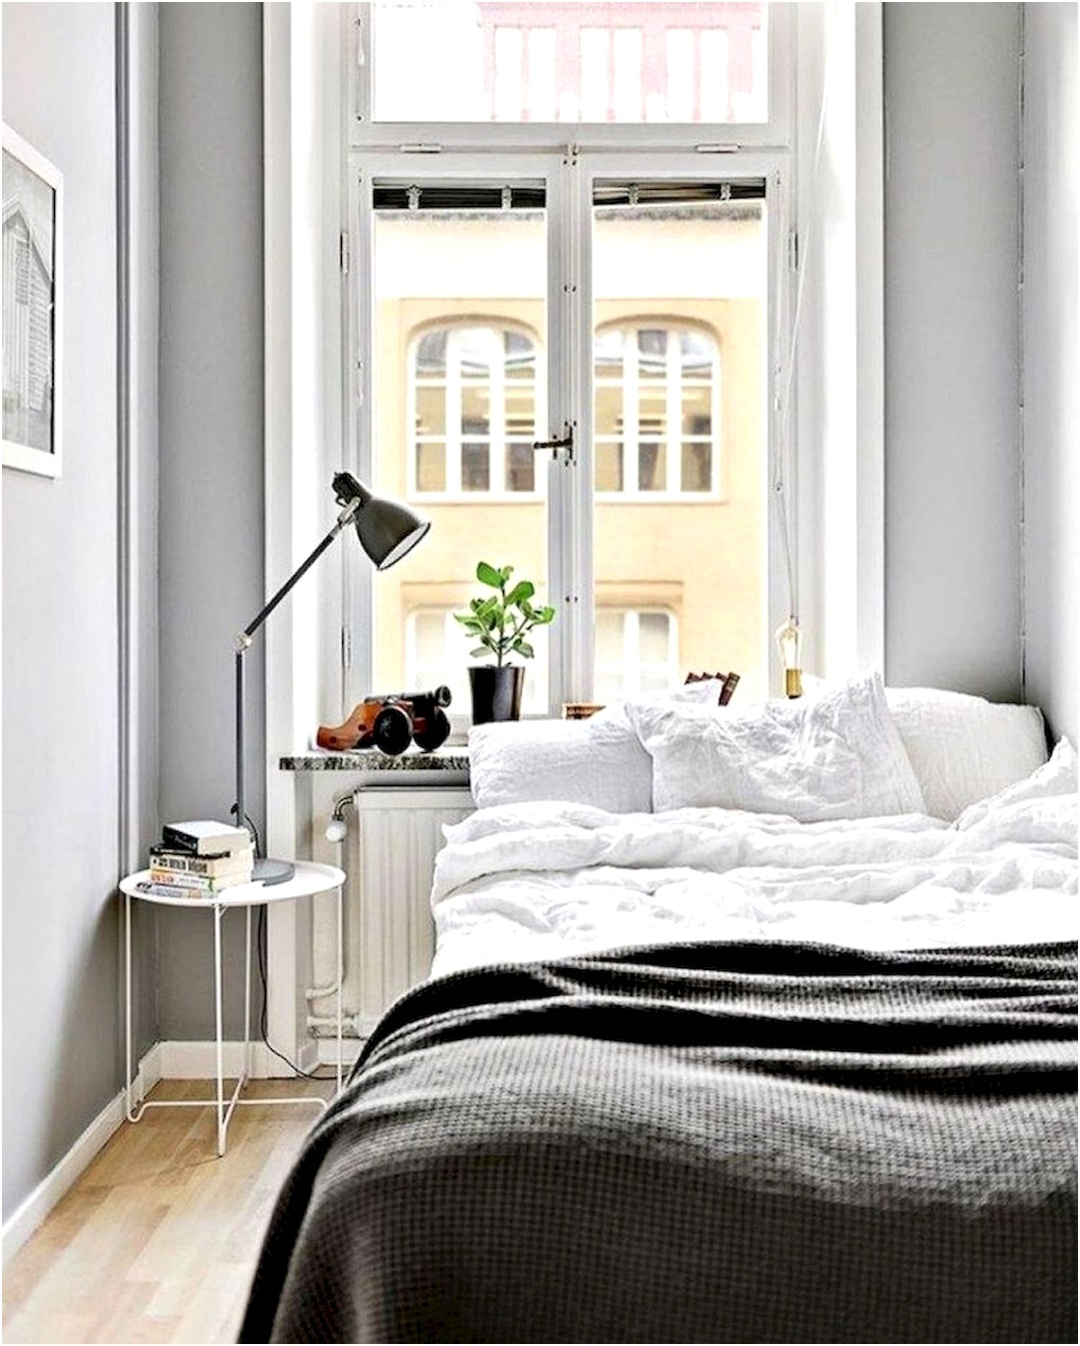 Awesome Small Bedroom Decorating Ideas A Bud 1